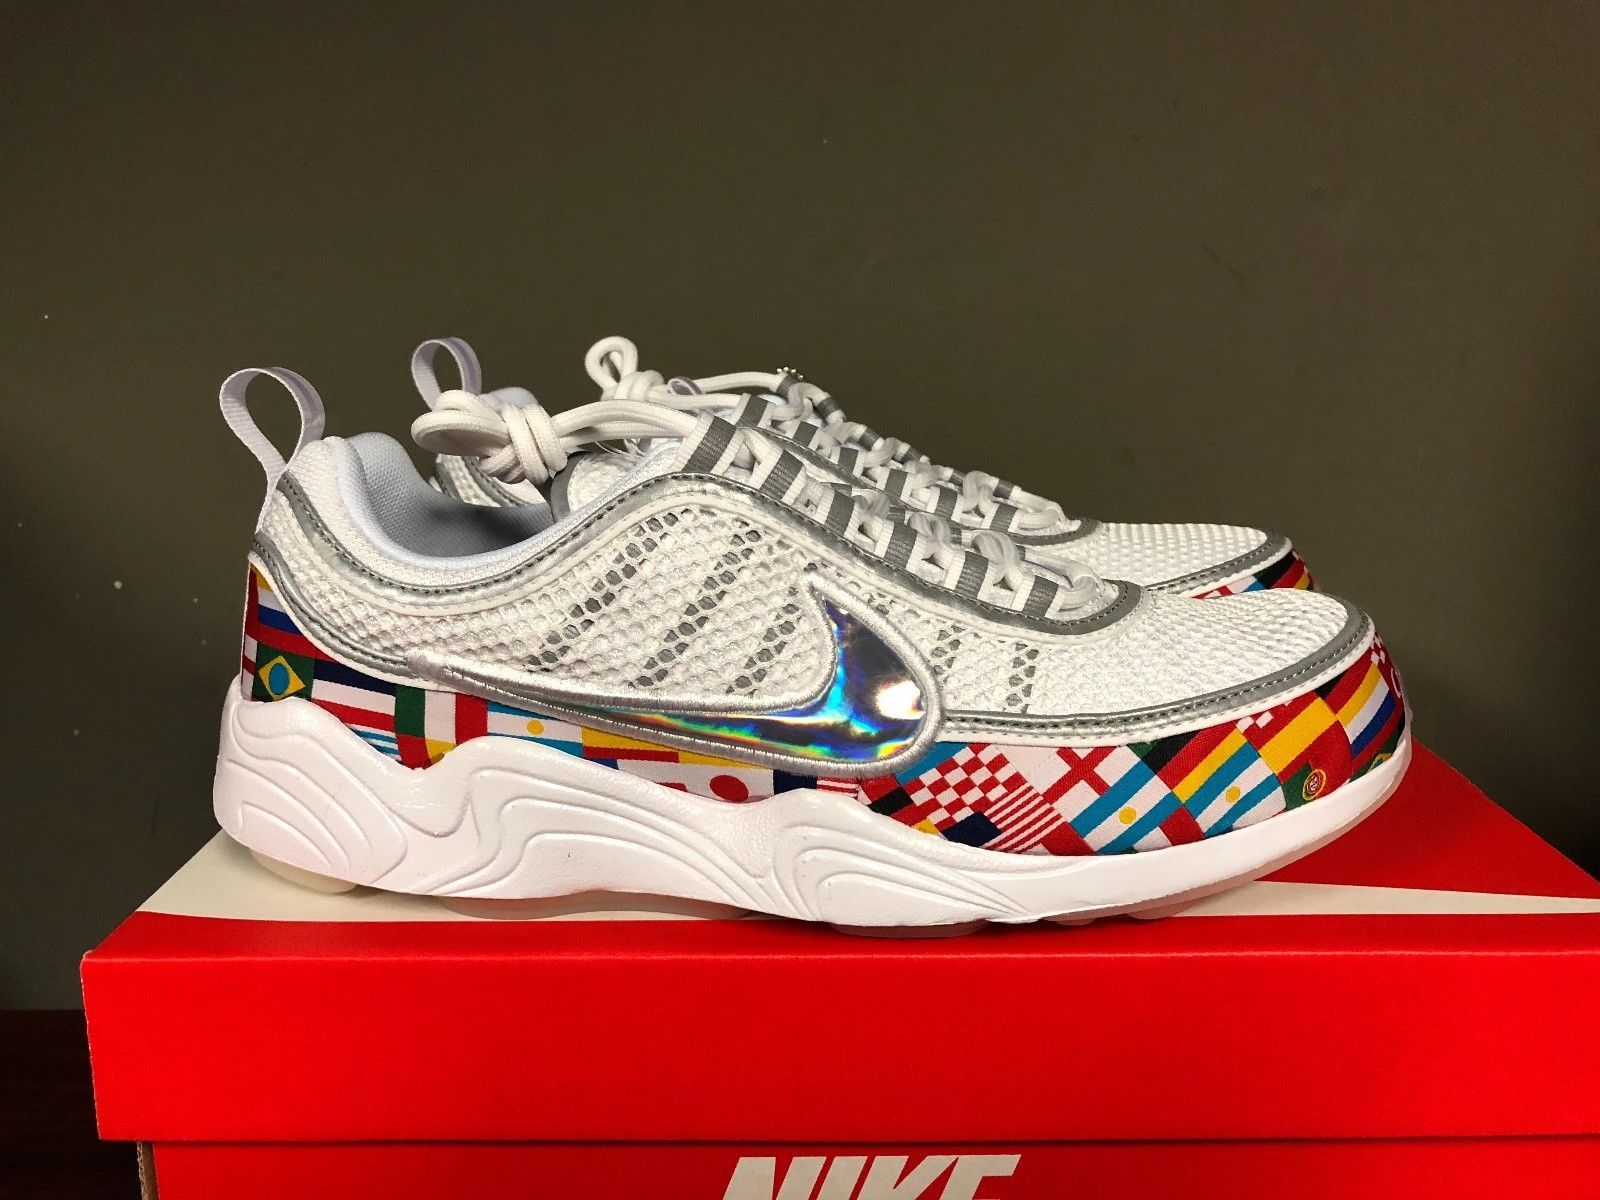 710dca434508 NIKE AIR ZOOM SPIRIDON 16 NIC Flag White Multi World Cup AO5121-100 NEW  2018 Discount Price 199.99 Free Shipping Buy it Now